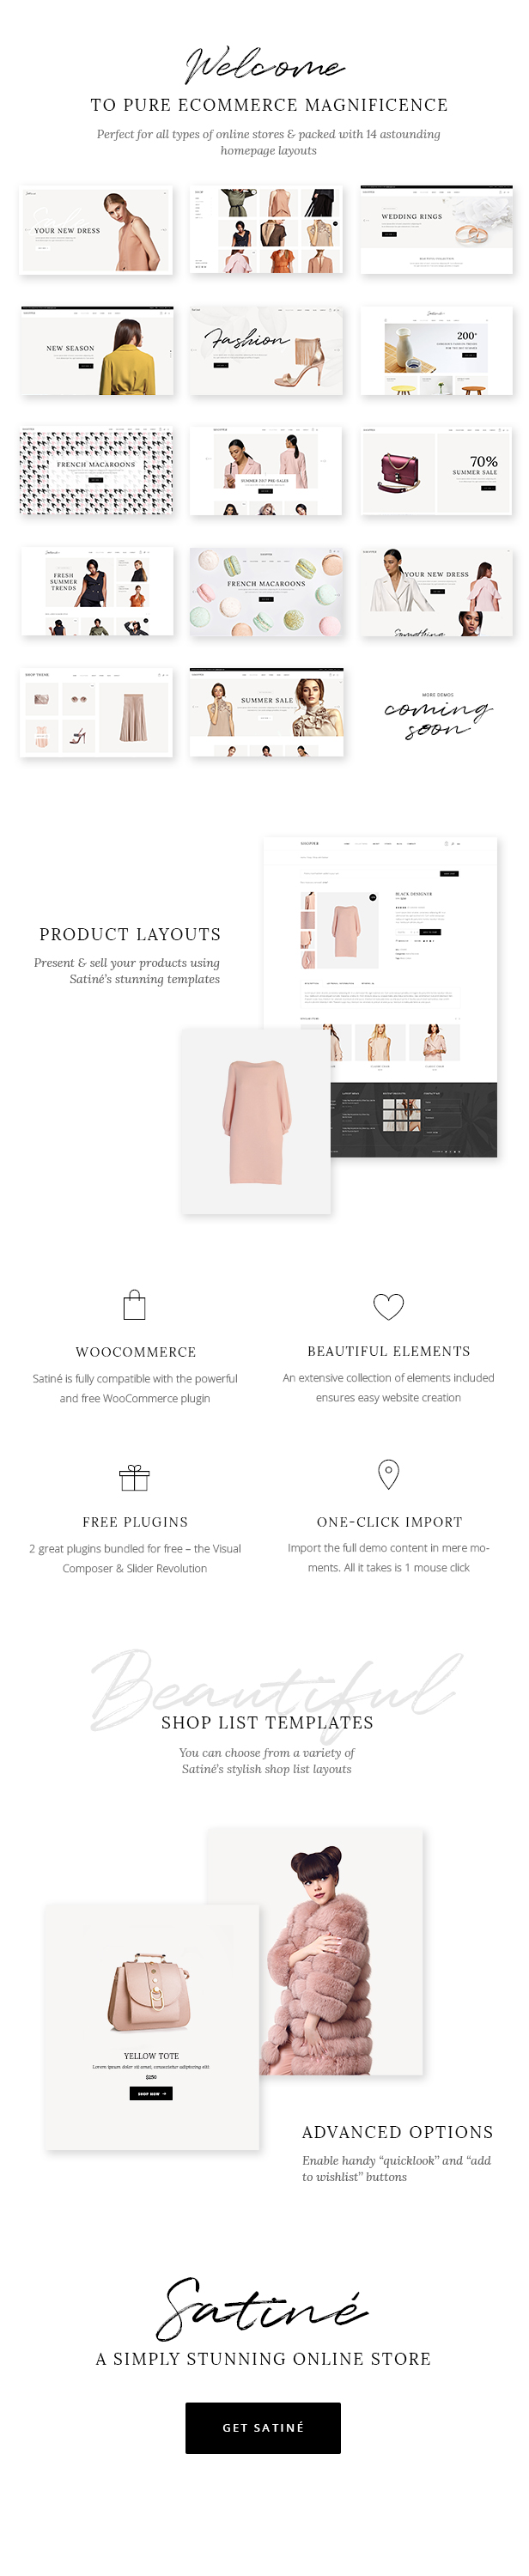 Satiné - Elegant Shop Theme - 1